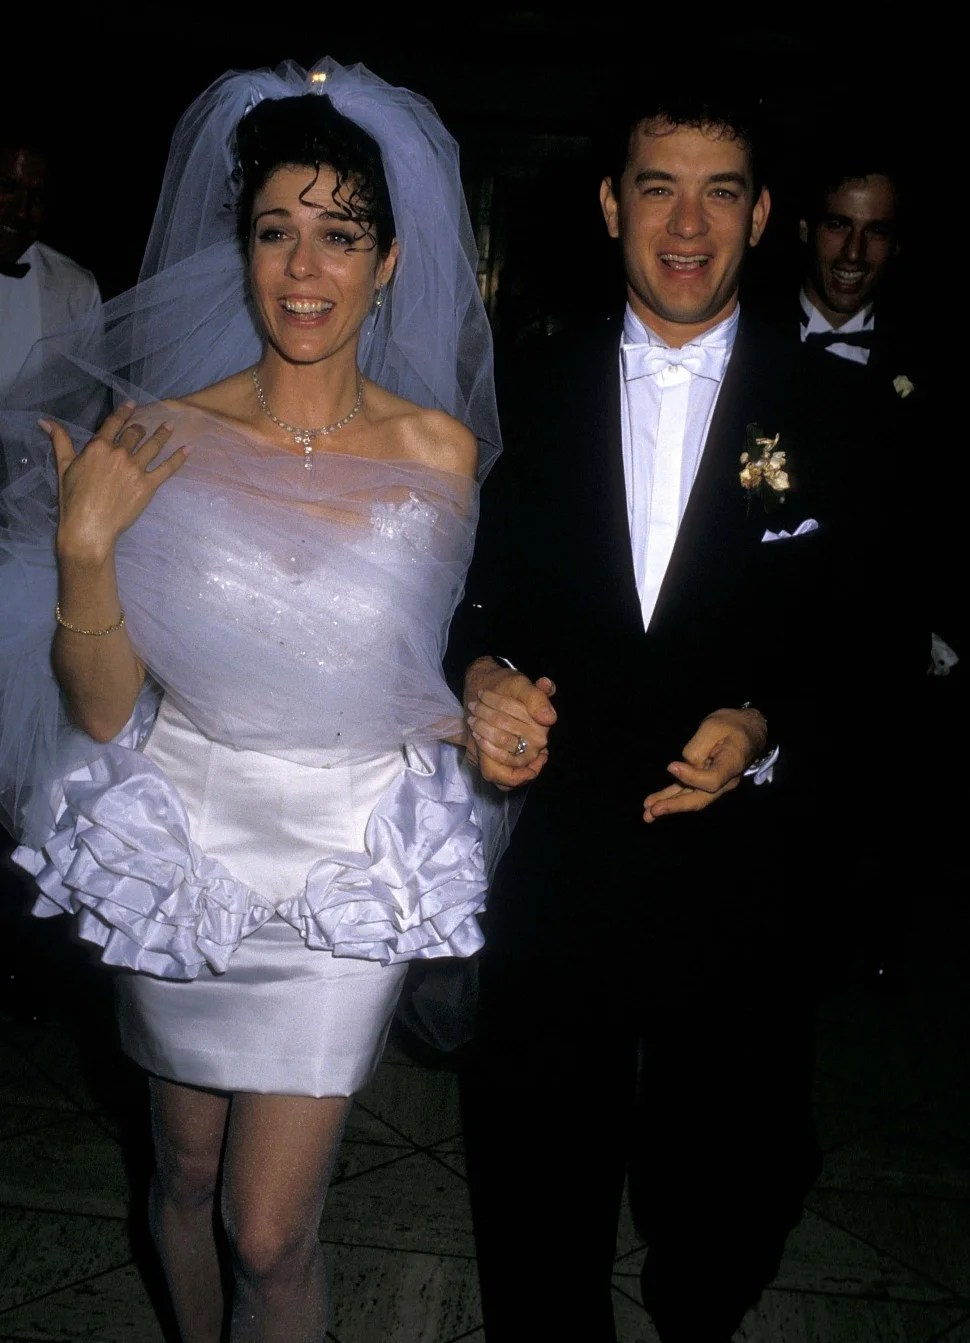 Rita Wilson and Tom Hanks attend their wedding reception on April 30, 1988 at Rex's in Los Angeles, California